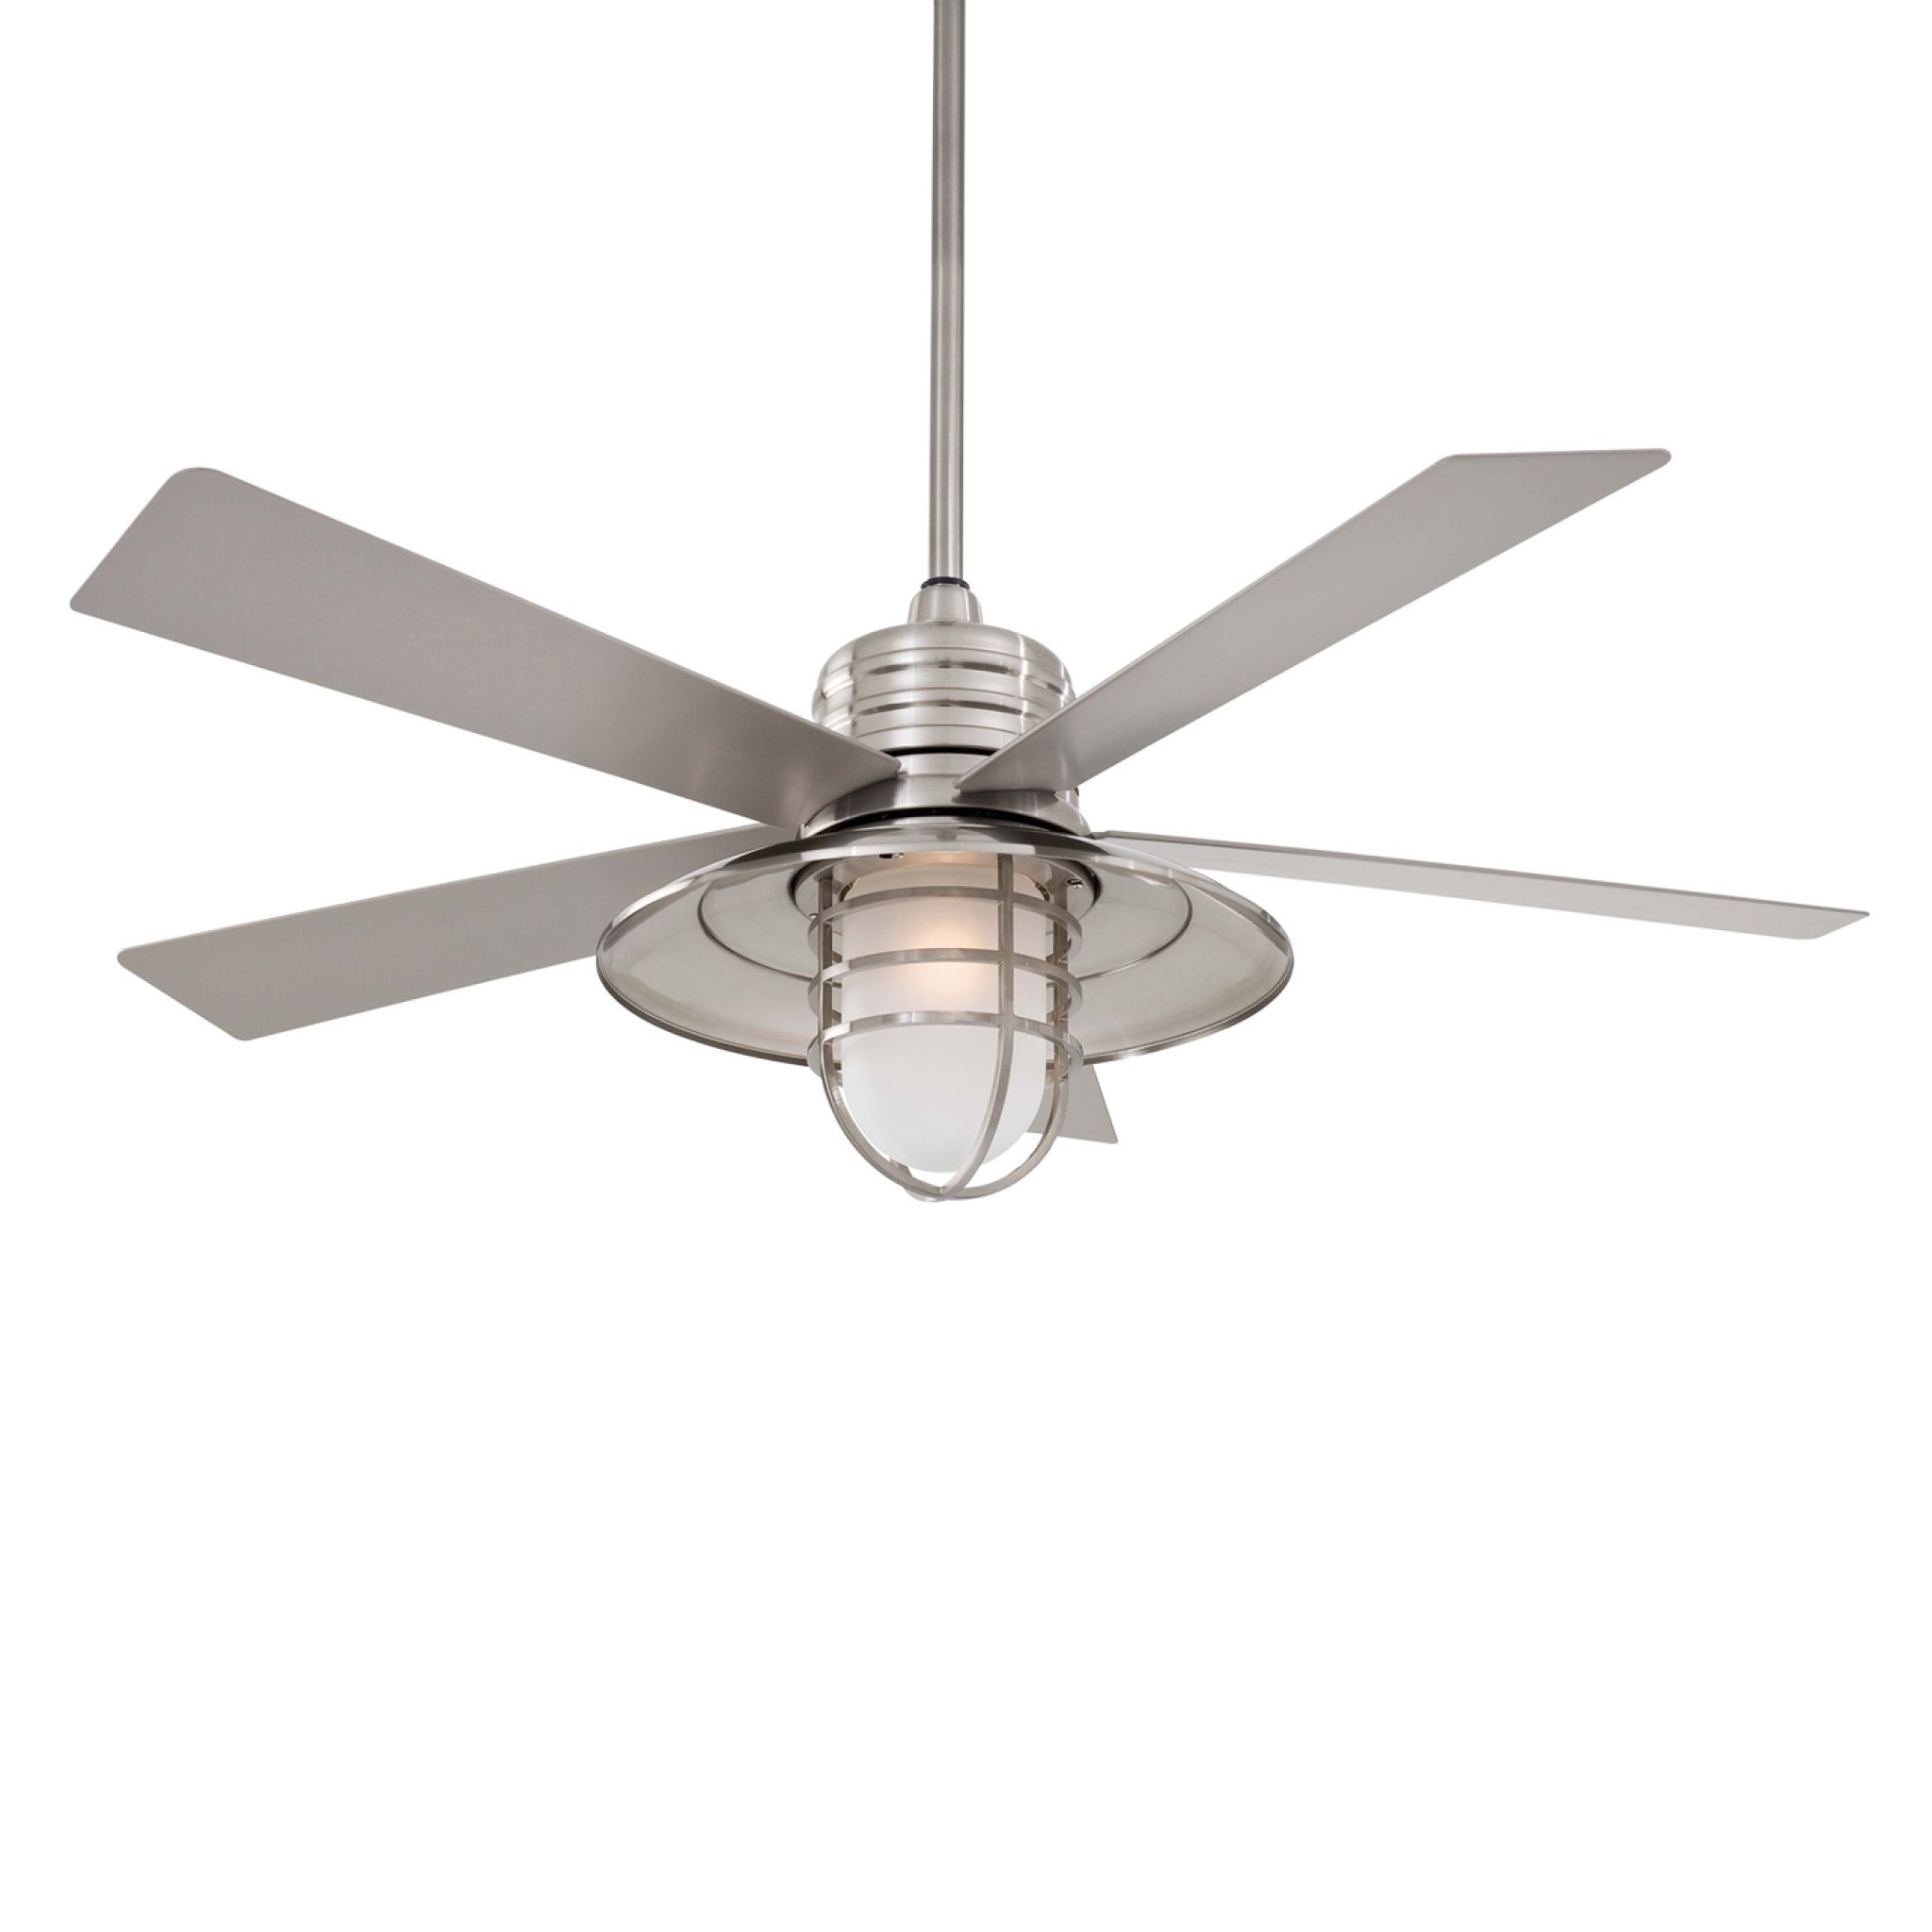 Most Recently Released Mini Outdoor Ceiling Fans With Lights Pertaining To Small Outdoor Ceiling Fan With Light – Best Paint For Interior Walls (View 6 of 20)